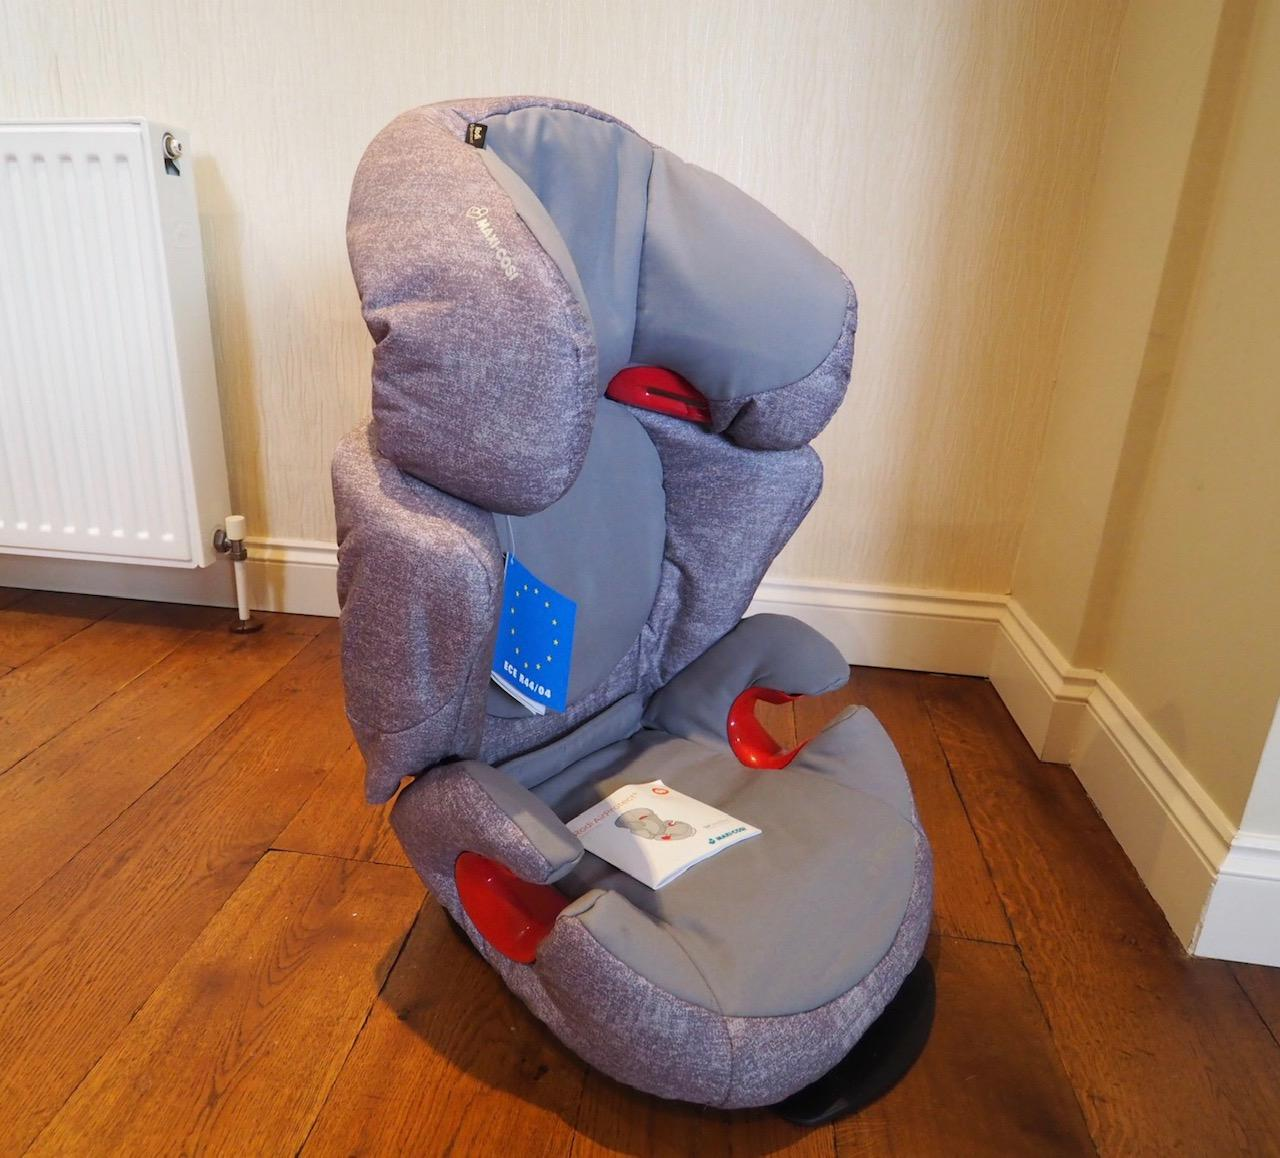 the maxi-cosi Rodi Air Protect car seat in nomad grey prior to installation side view